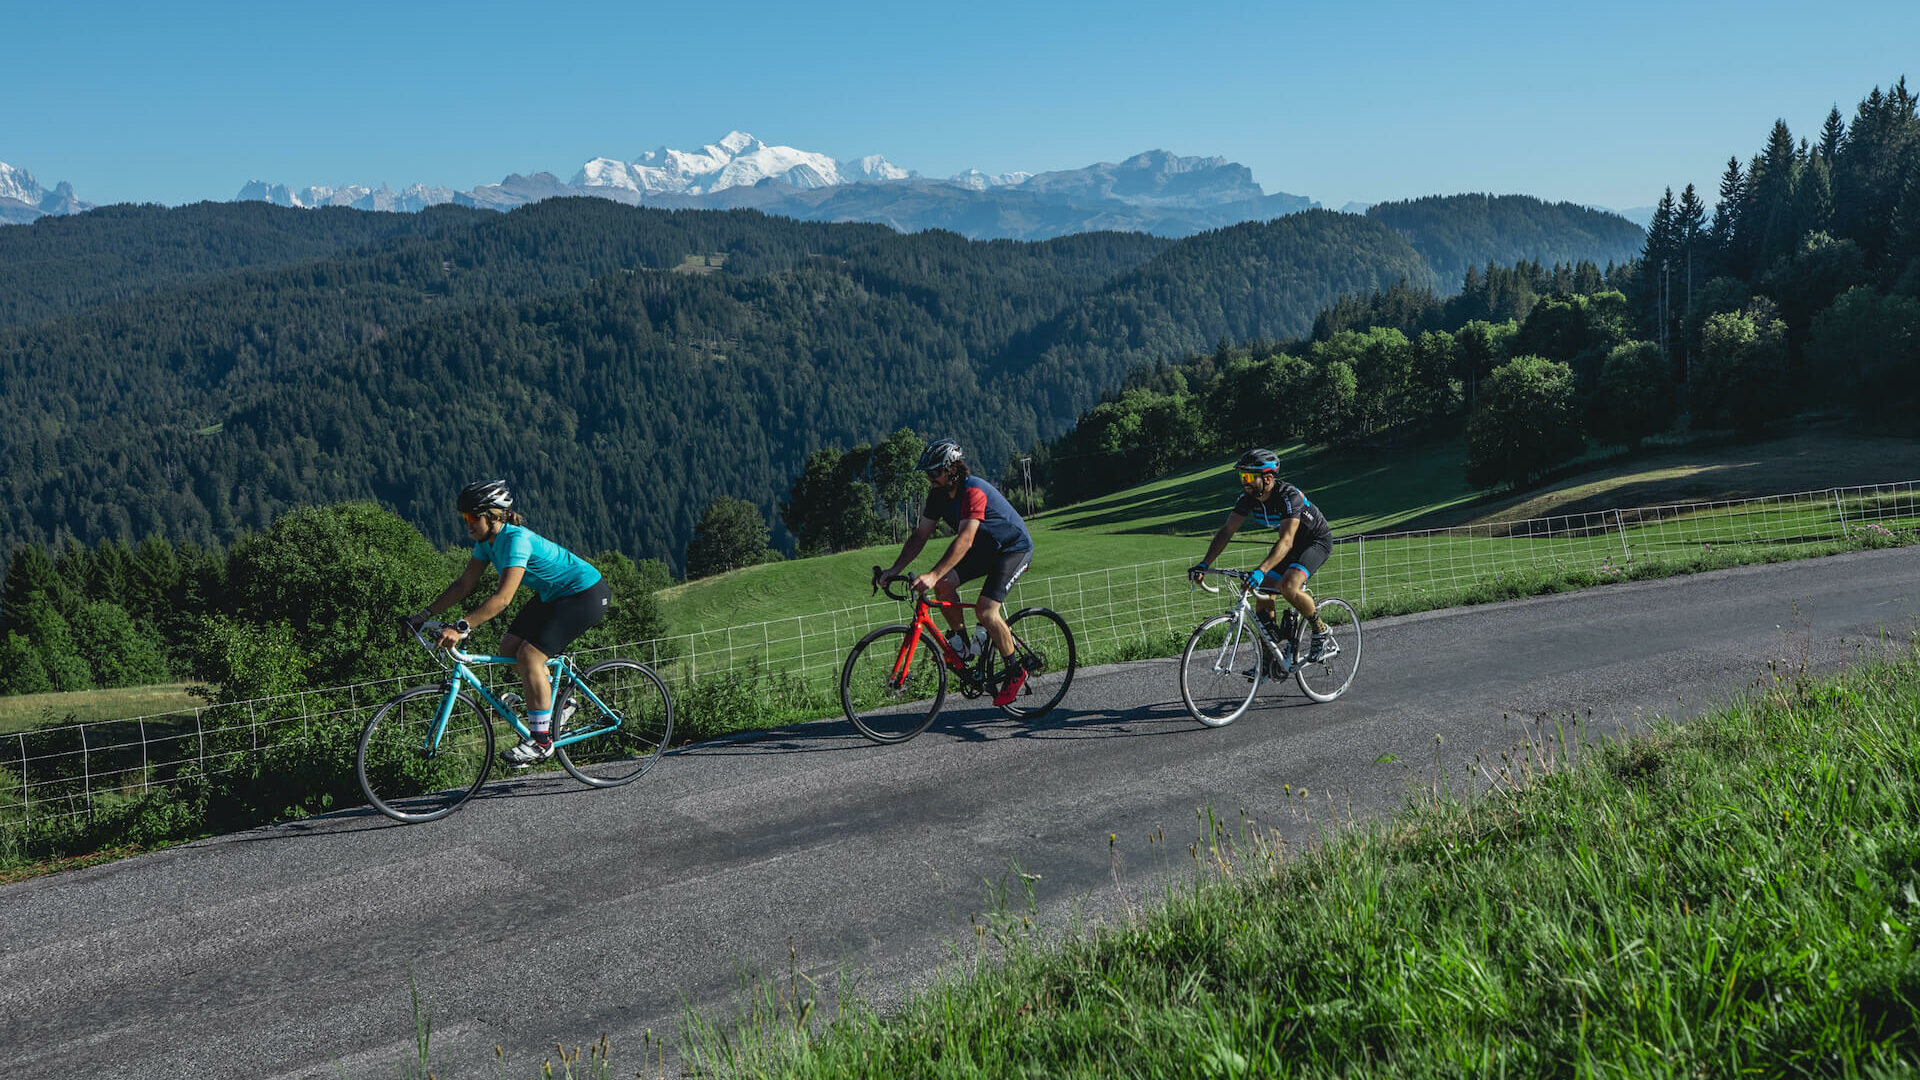 Cyclists on a mountain road in summer